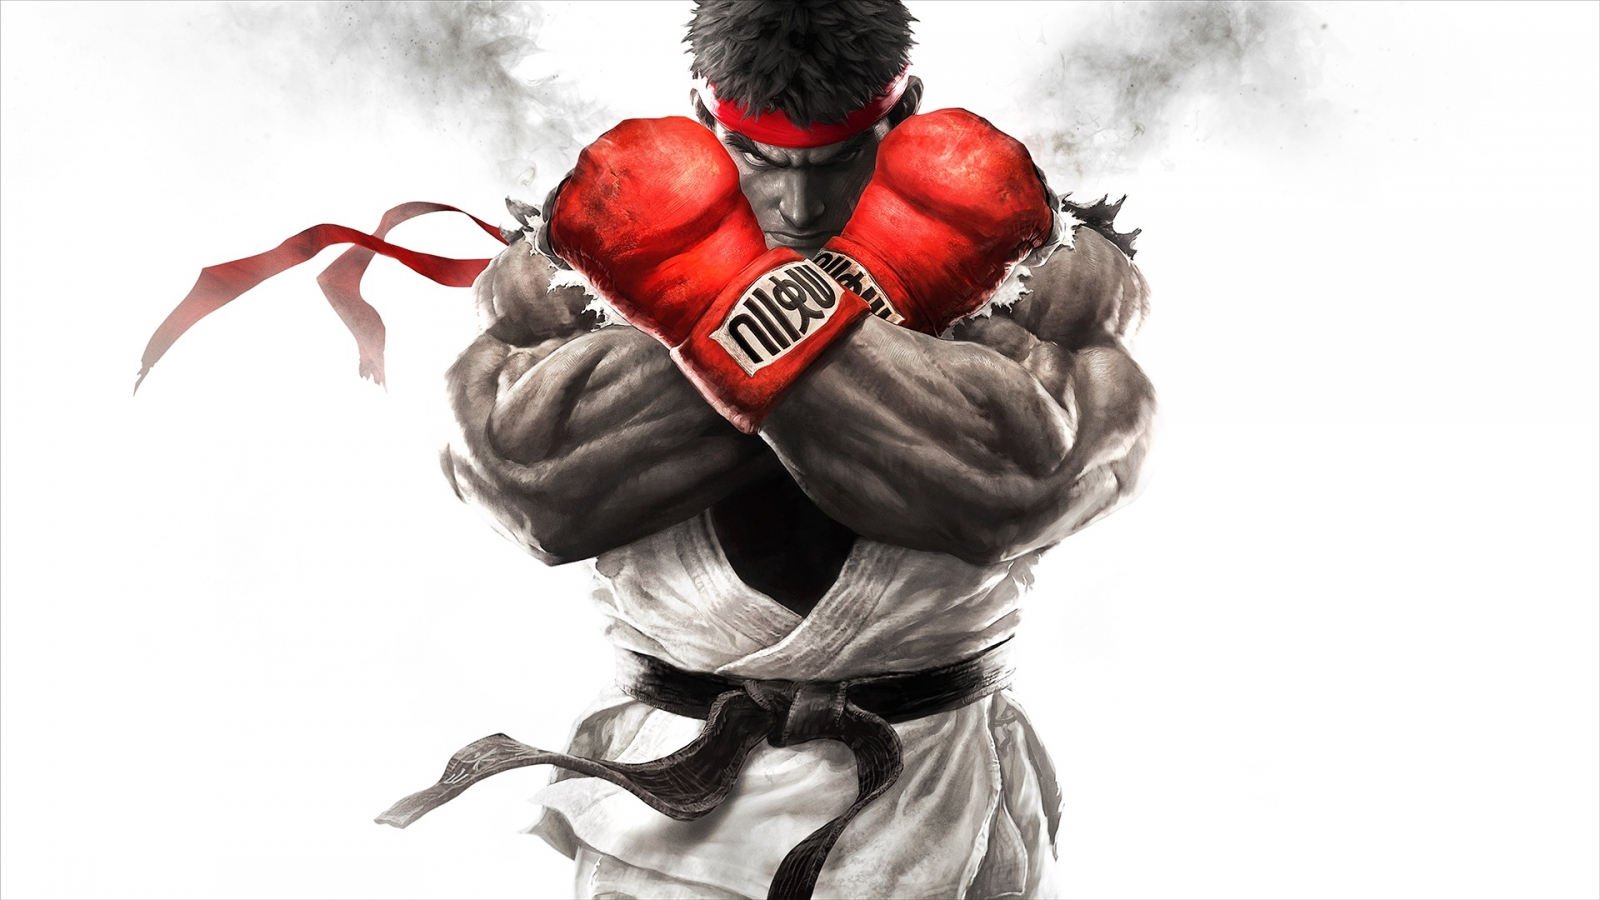 Street Fighter 5 patch New update to improve matchmaking logic